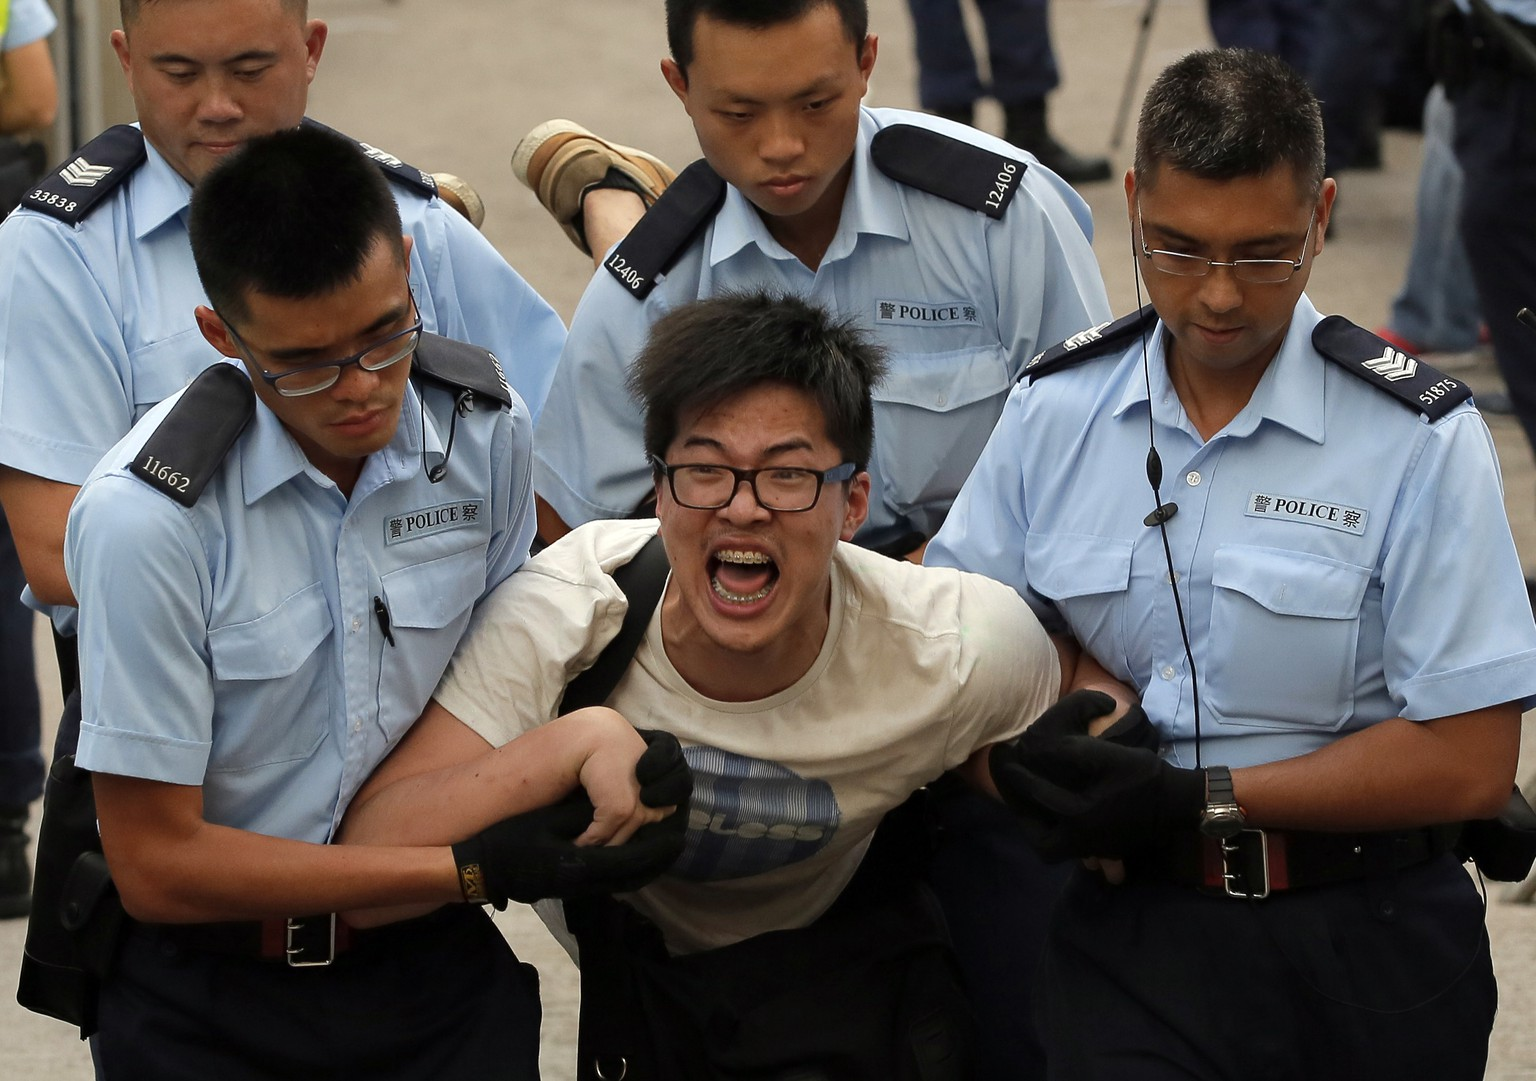 A protester, center, is taken away by police officers after hundreds of protesters staged a peaceful sit-ins overnight on a street in the financial district in Hong Kong Wednesday, July 2, 2014, following a huge rally to show their support for democratic reform and oppose Beijing's desire to have the final say on candidates for the chief executive's job. (AP Photo/Vincent Yu)